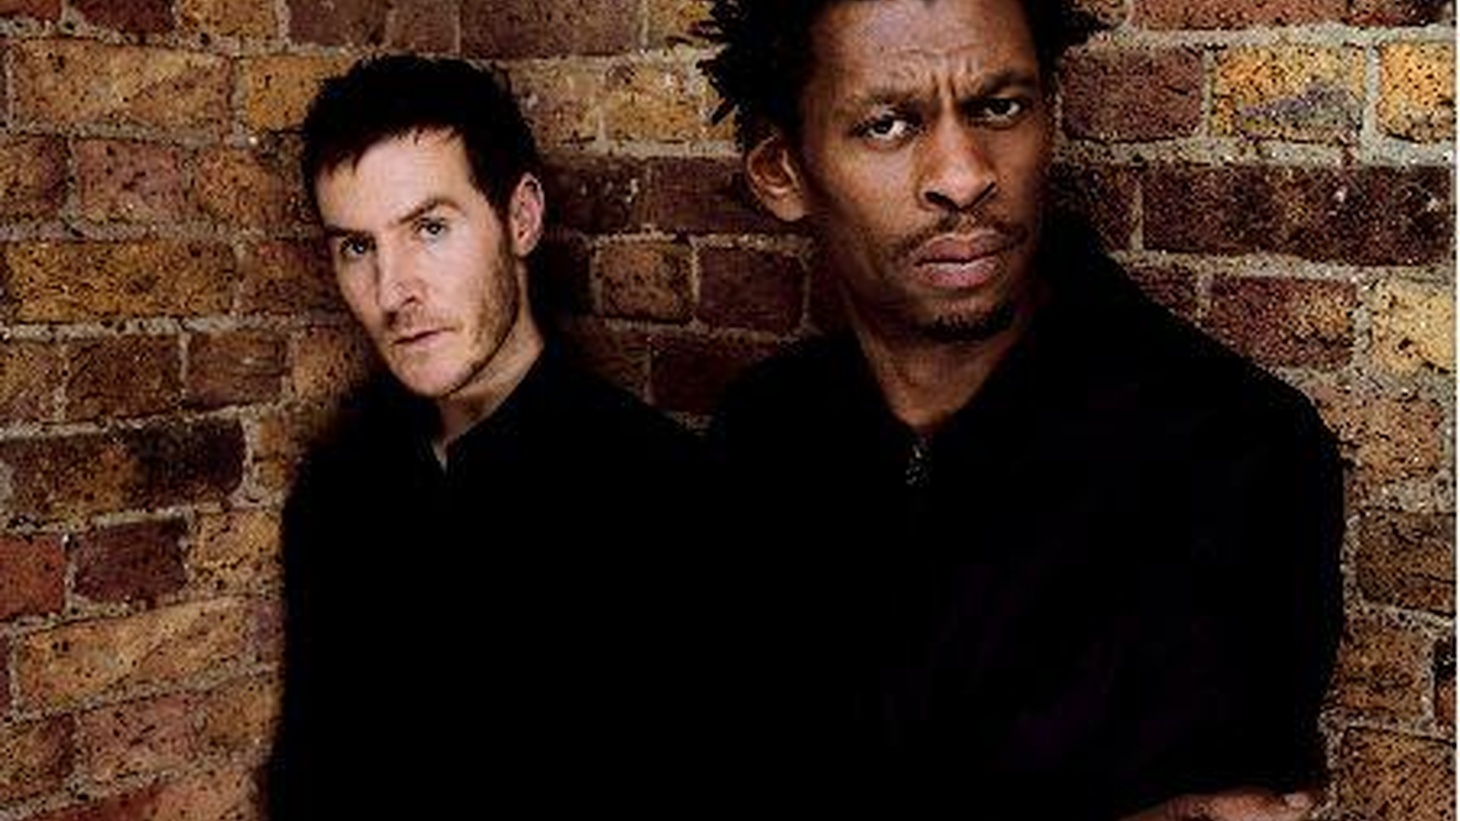 The masterminds behind the groundbreaking UK act Massive Attack — Robert Del Naja and Grant Marshall – share their favorite songs in a Guest DJ set on Morning Becomes Eclectic at 11:15am.